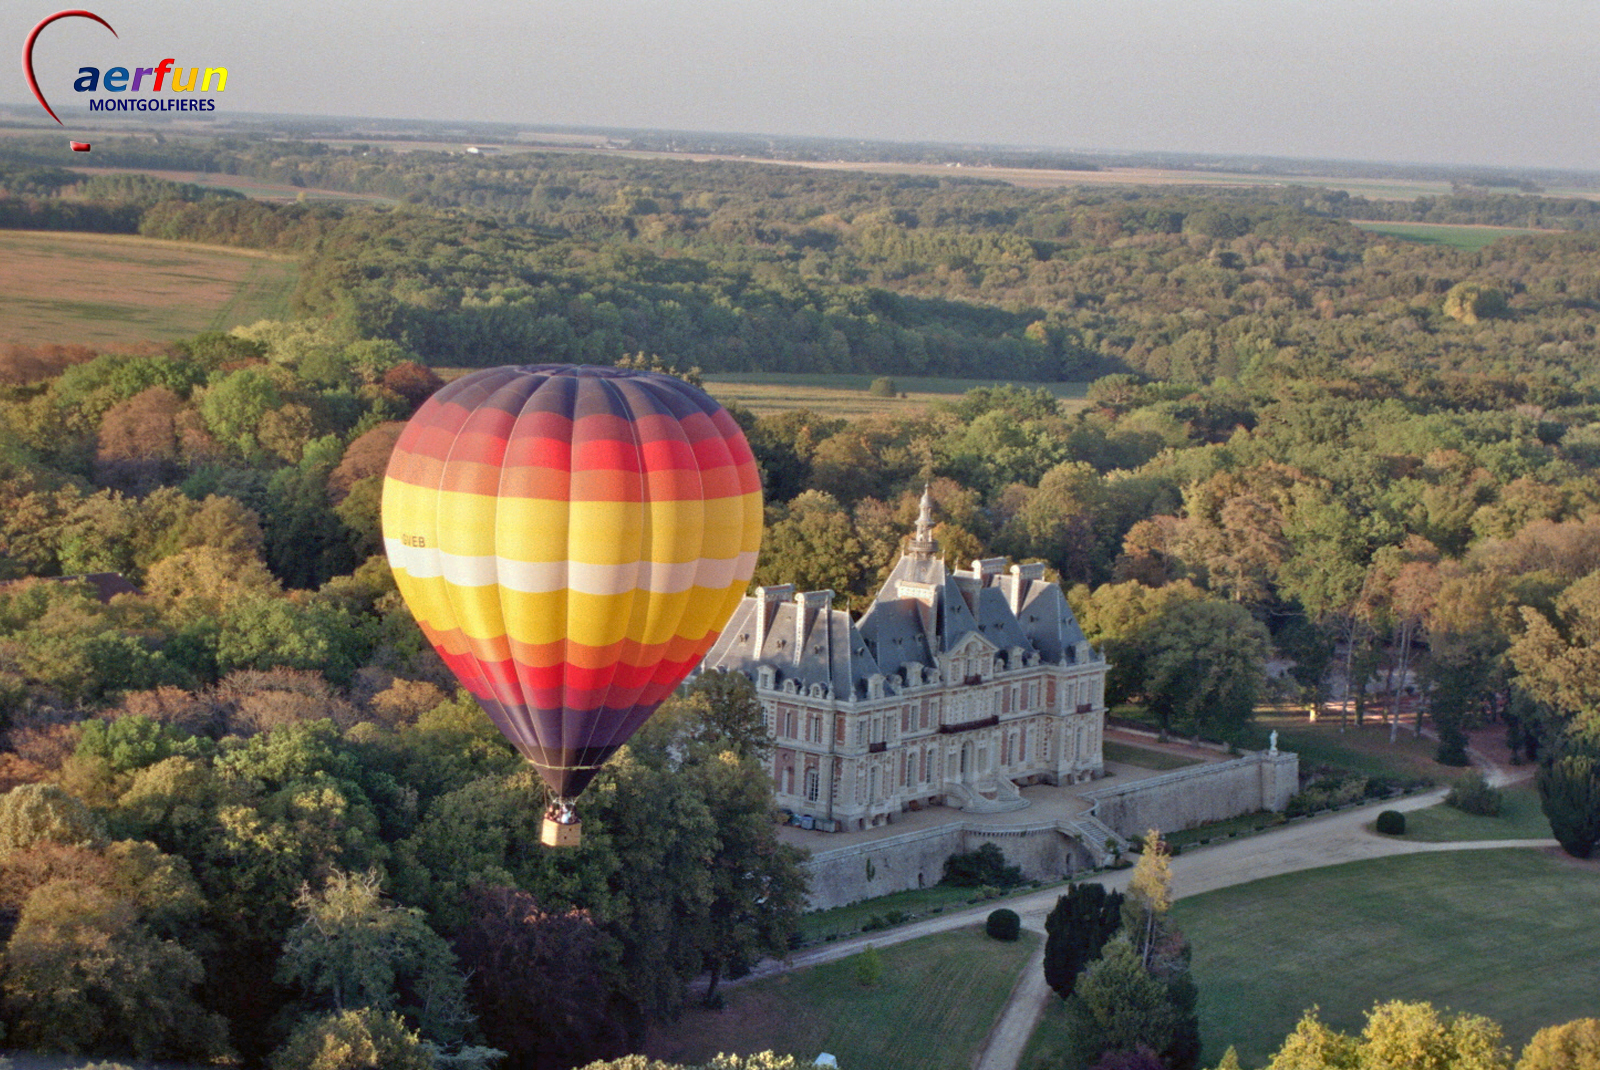 Infos Reims Photo Gallery - Aerfun Paris Balloons